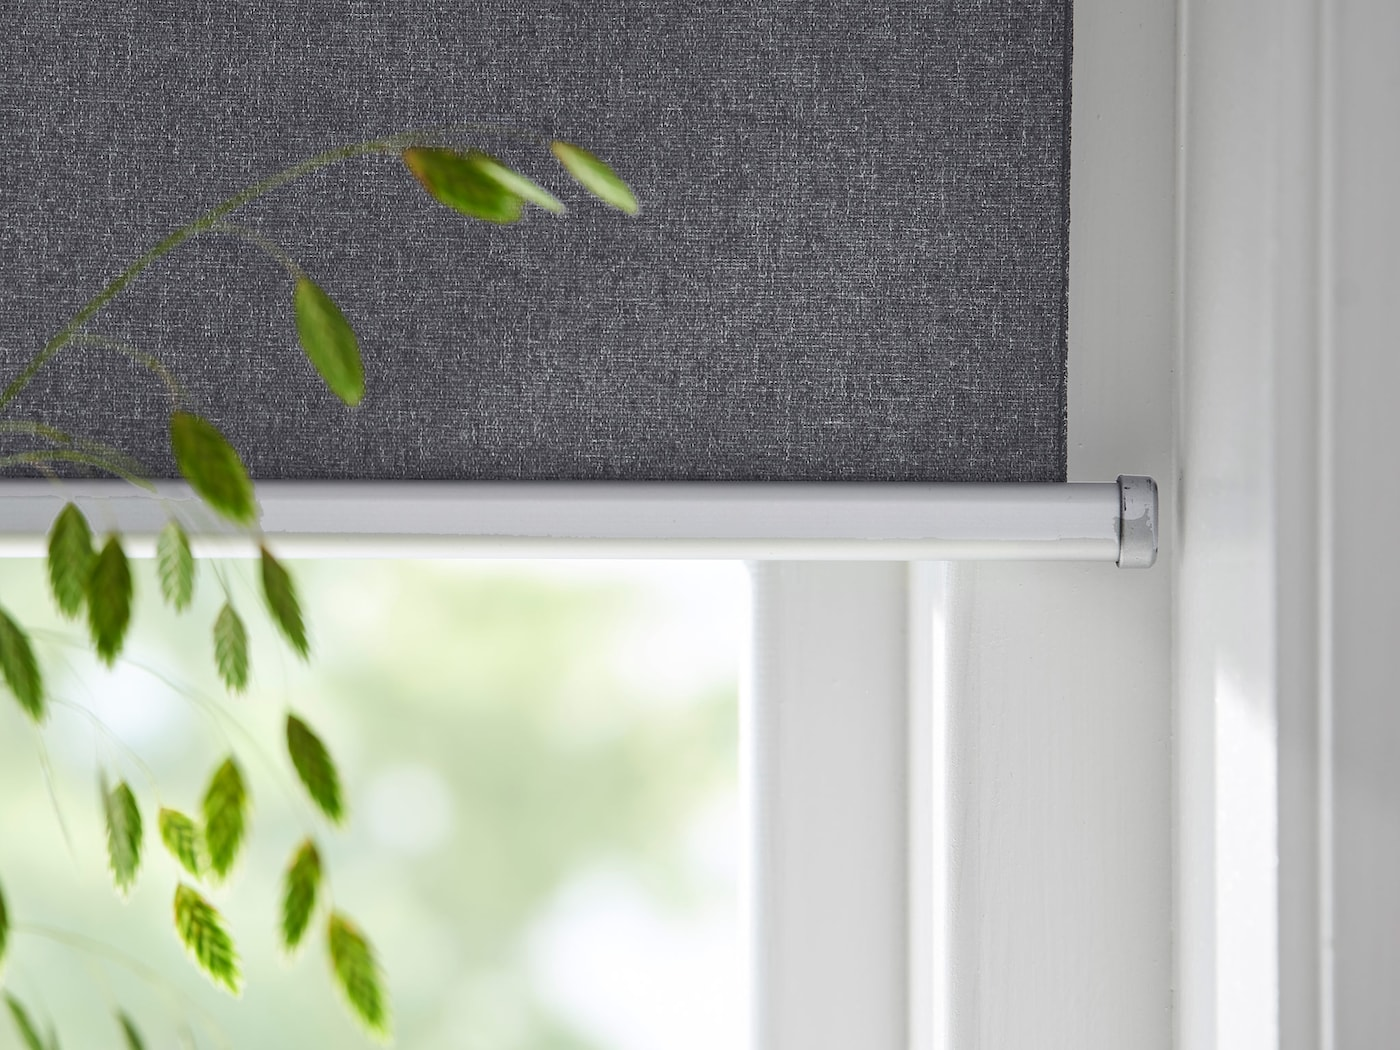 Close-up view of a FYRTUR smart window blind with houseplant in foreground.